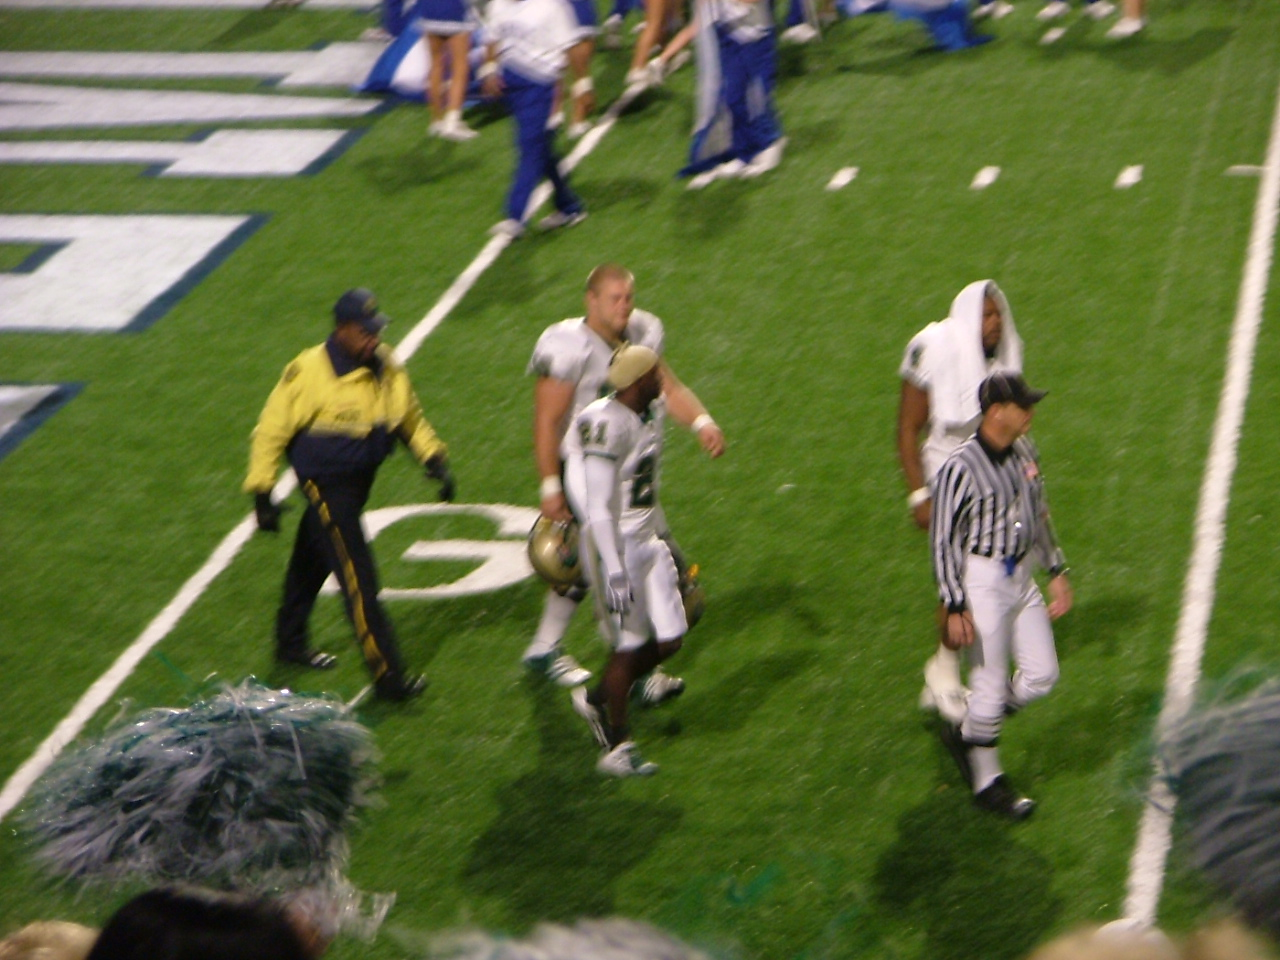 UAB coming onto the field